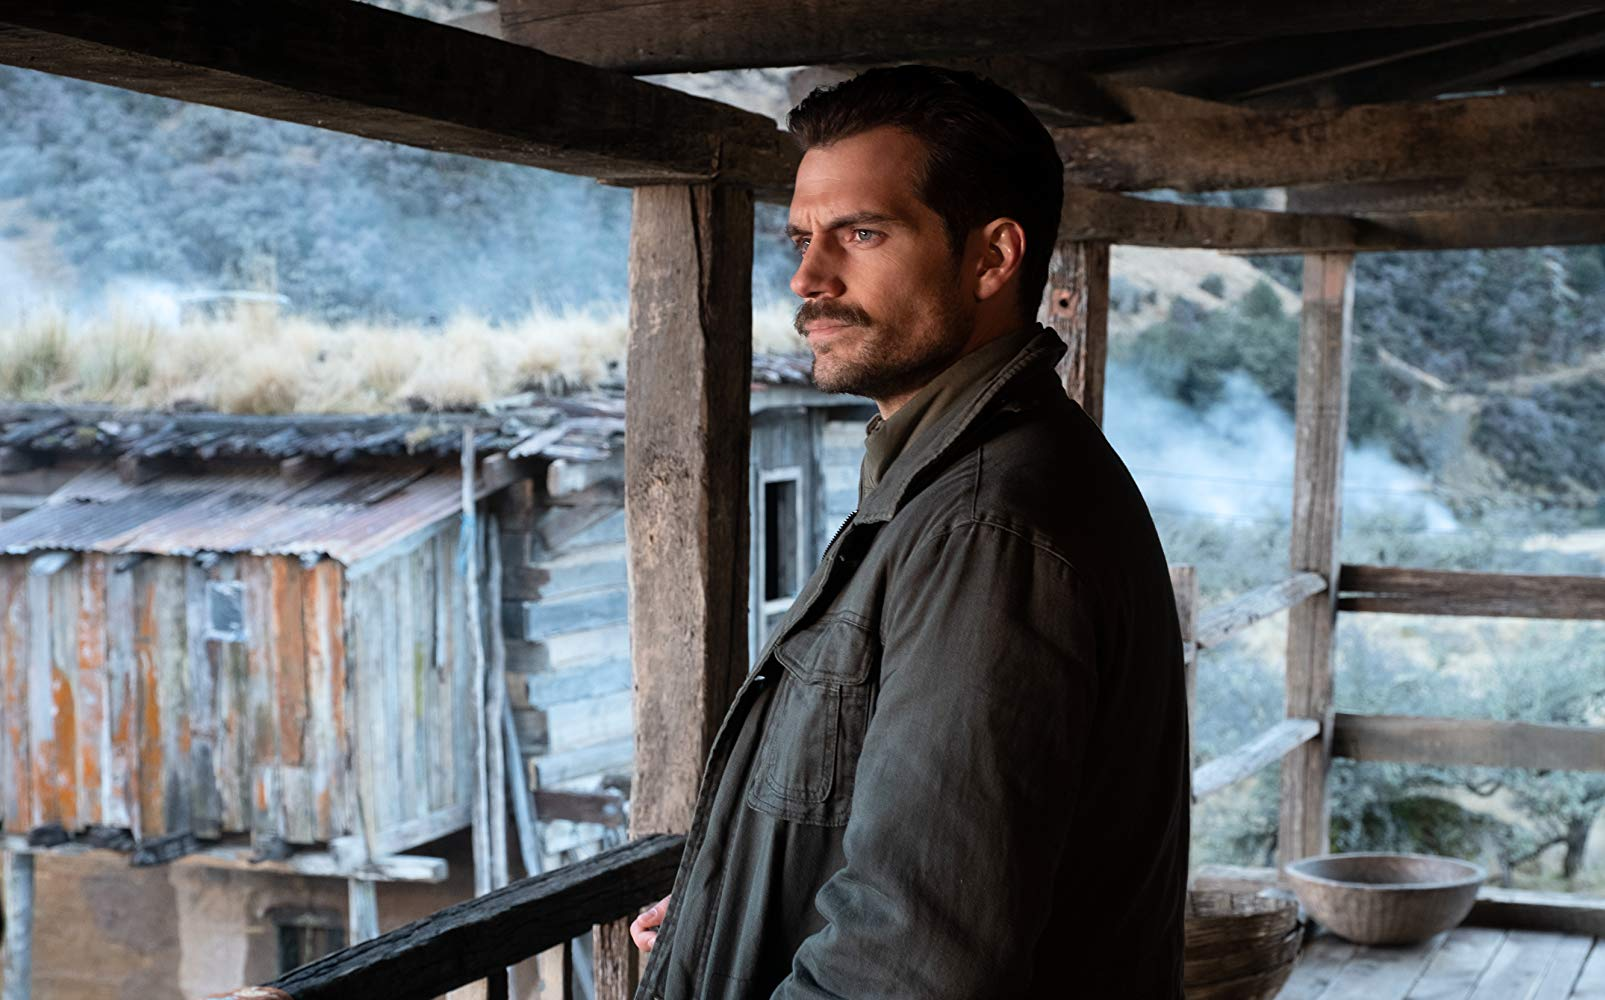 Henry Cavill as CIA agent August Walker in Mission: Impossible - Fallout (2018)